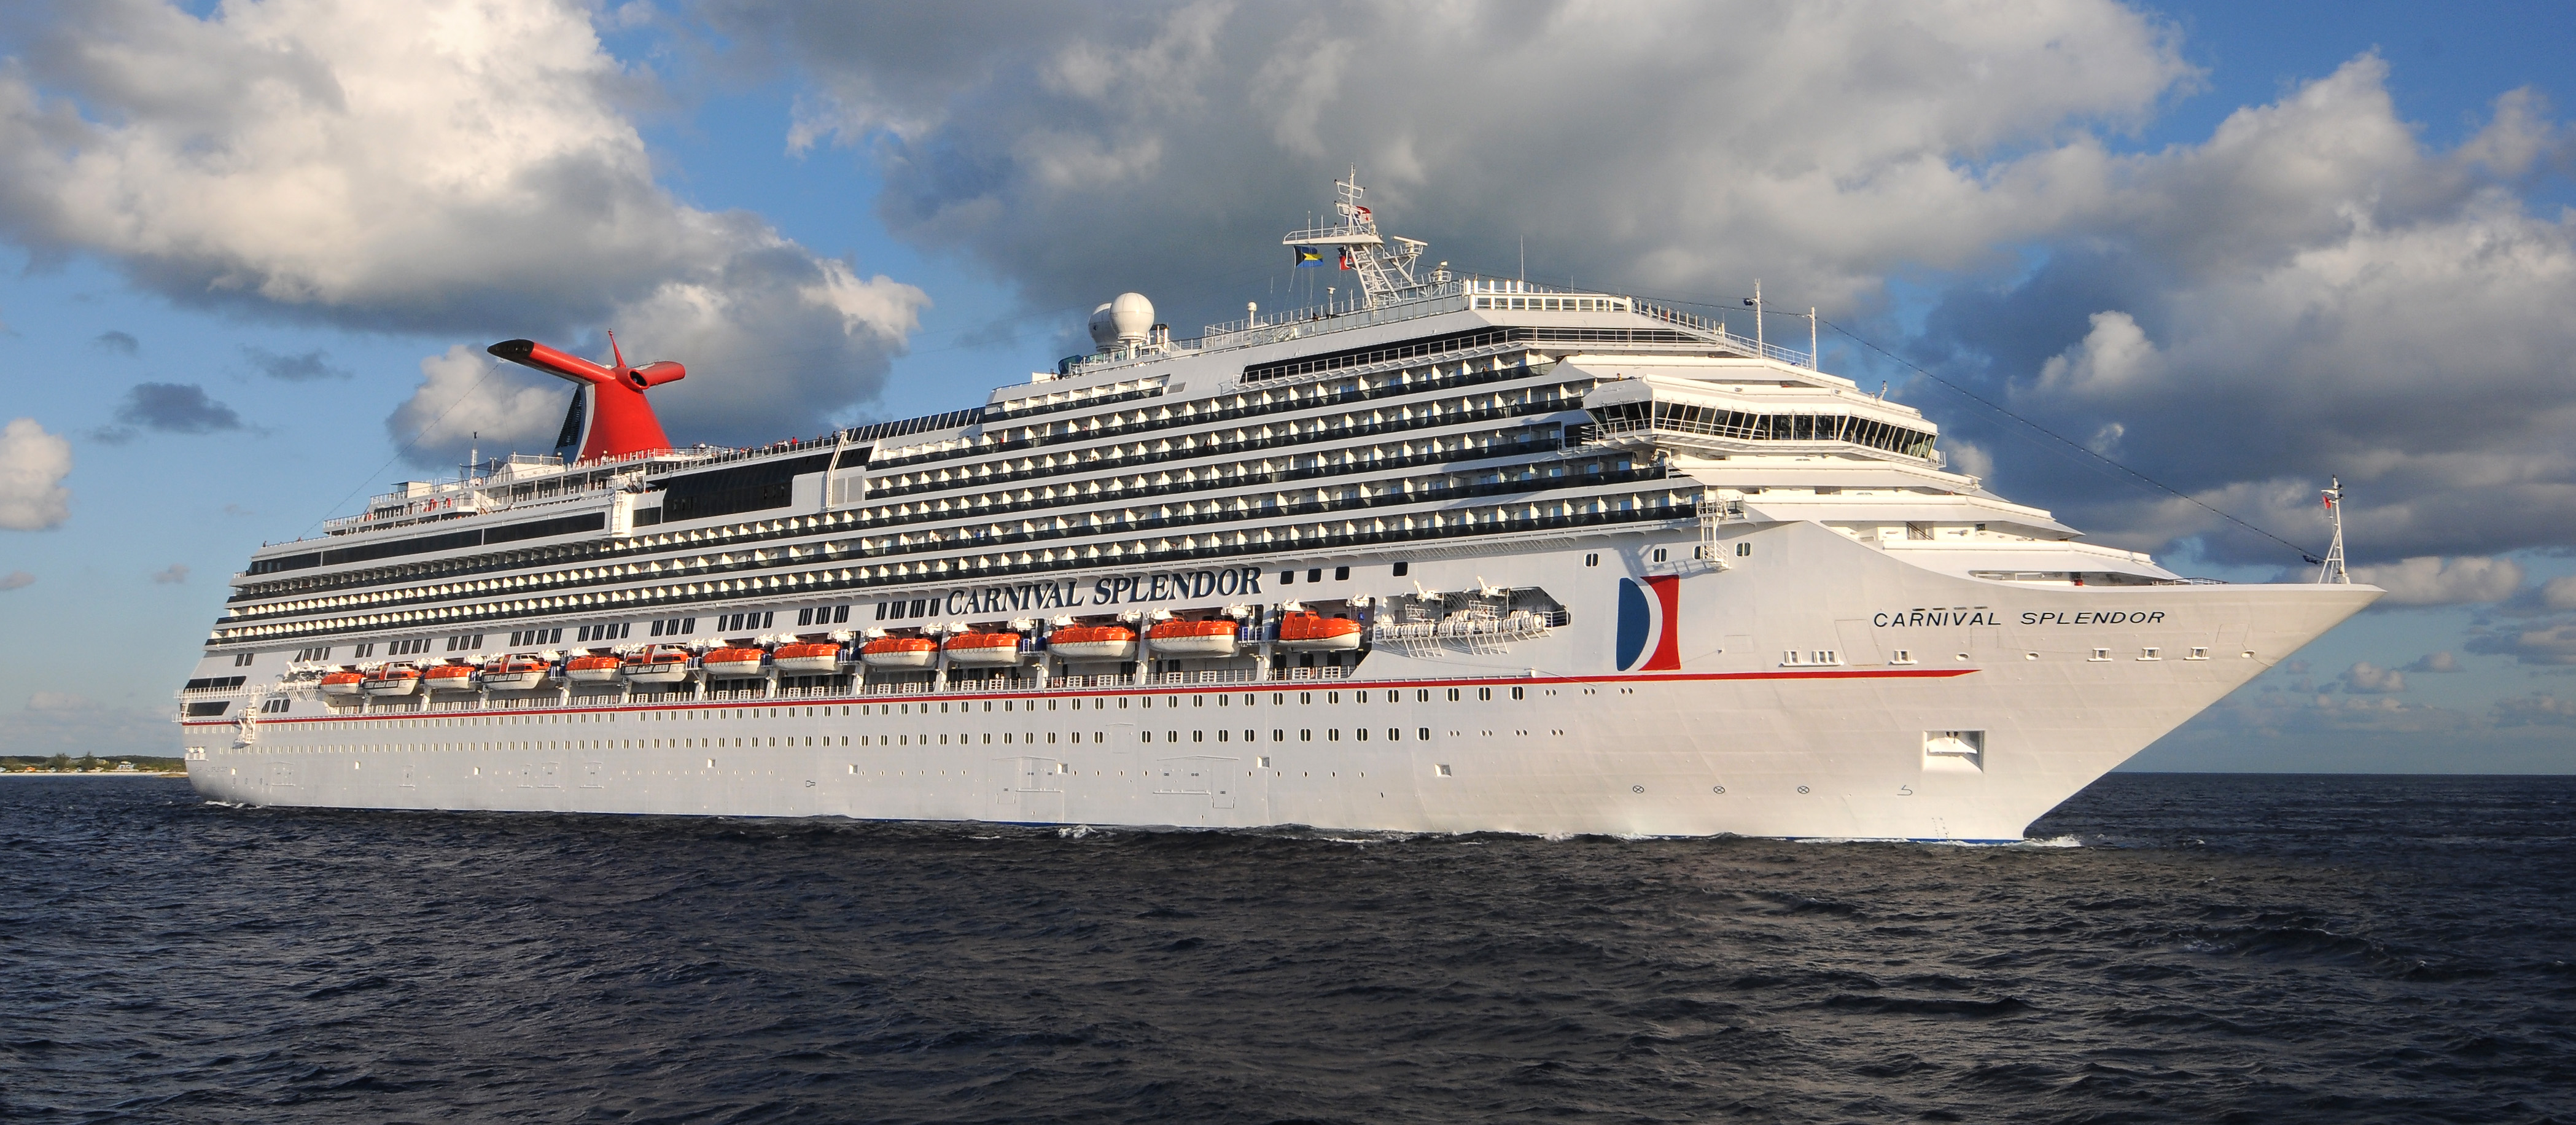 Including Carnival Splendor S Four California Based Ships Expected To Carry A Record 620 000 Pengers Annually More Than Any Other Cruise